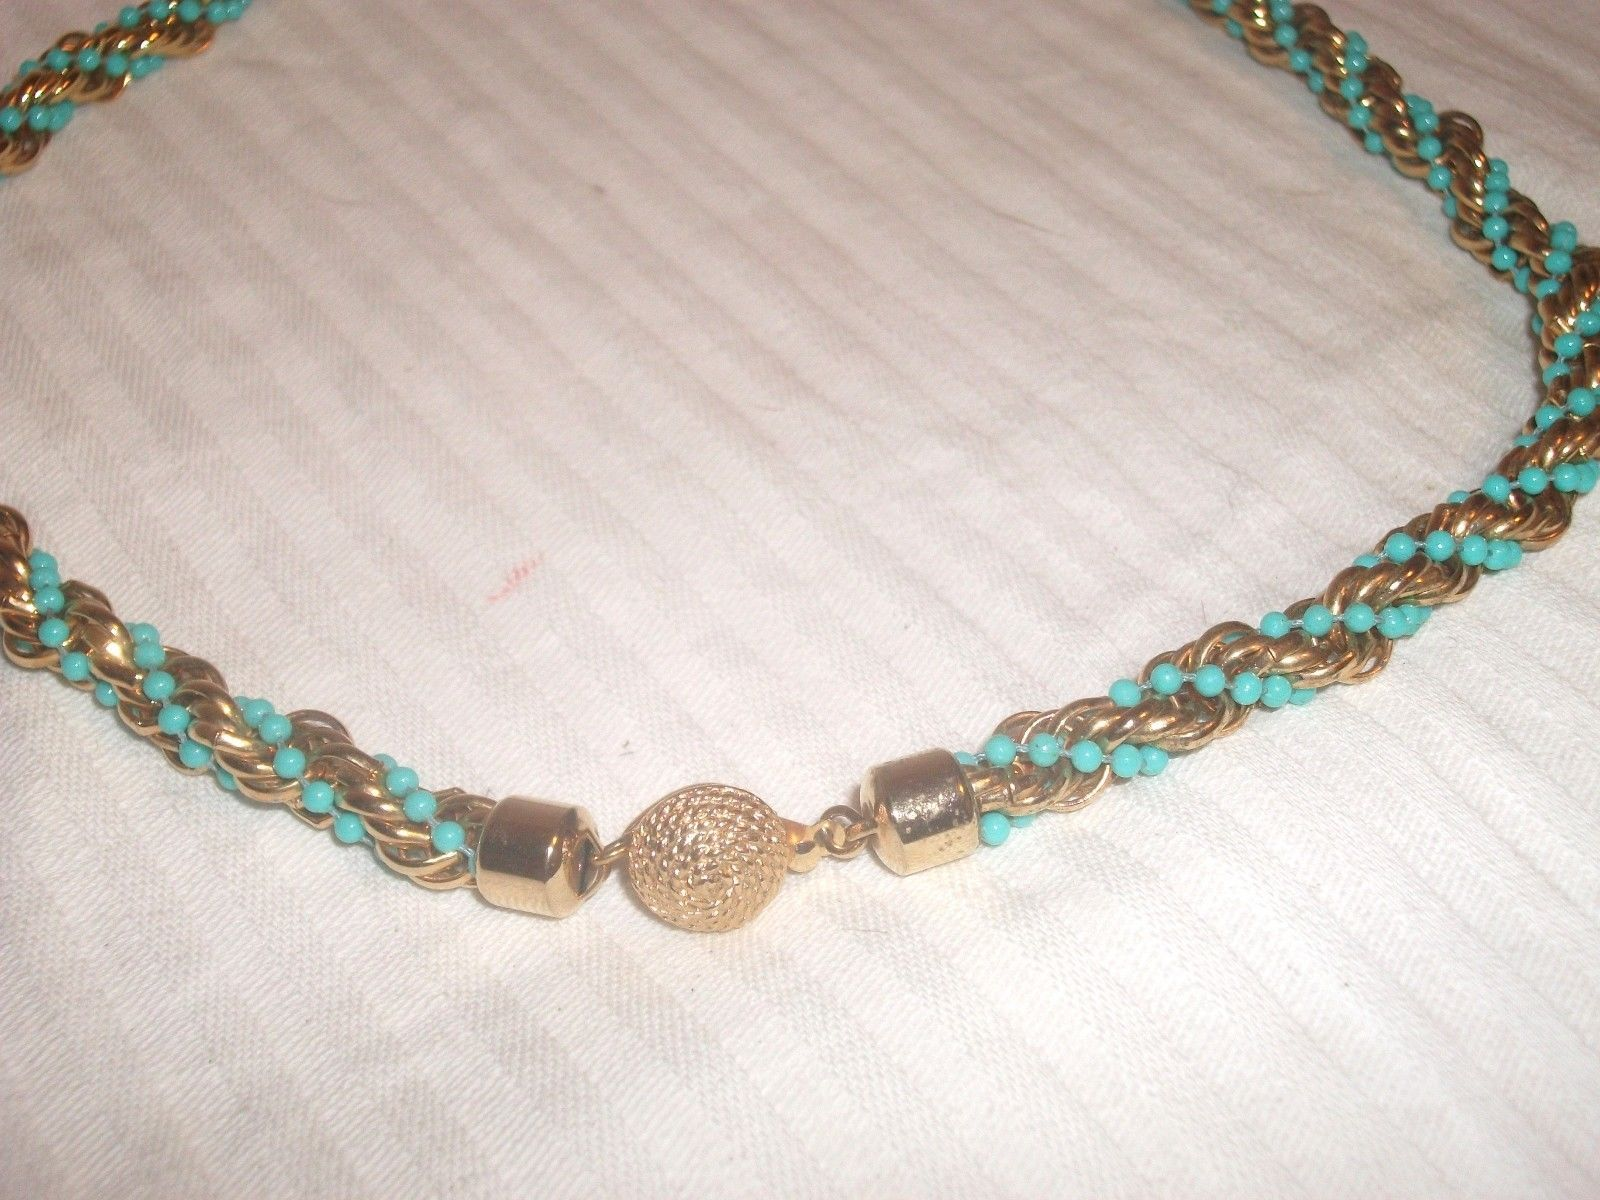 Primary image for Vintage AVON Gold and Faux Turquoise Beads Twisted Rope Statement Necklace 20""